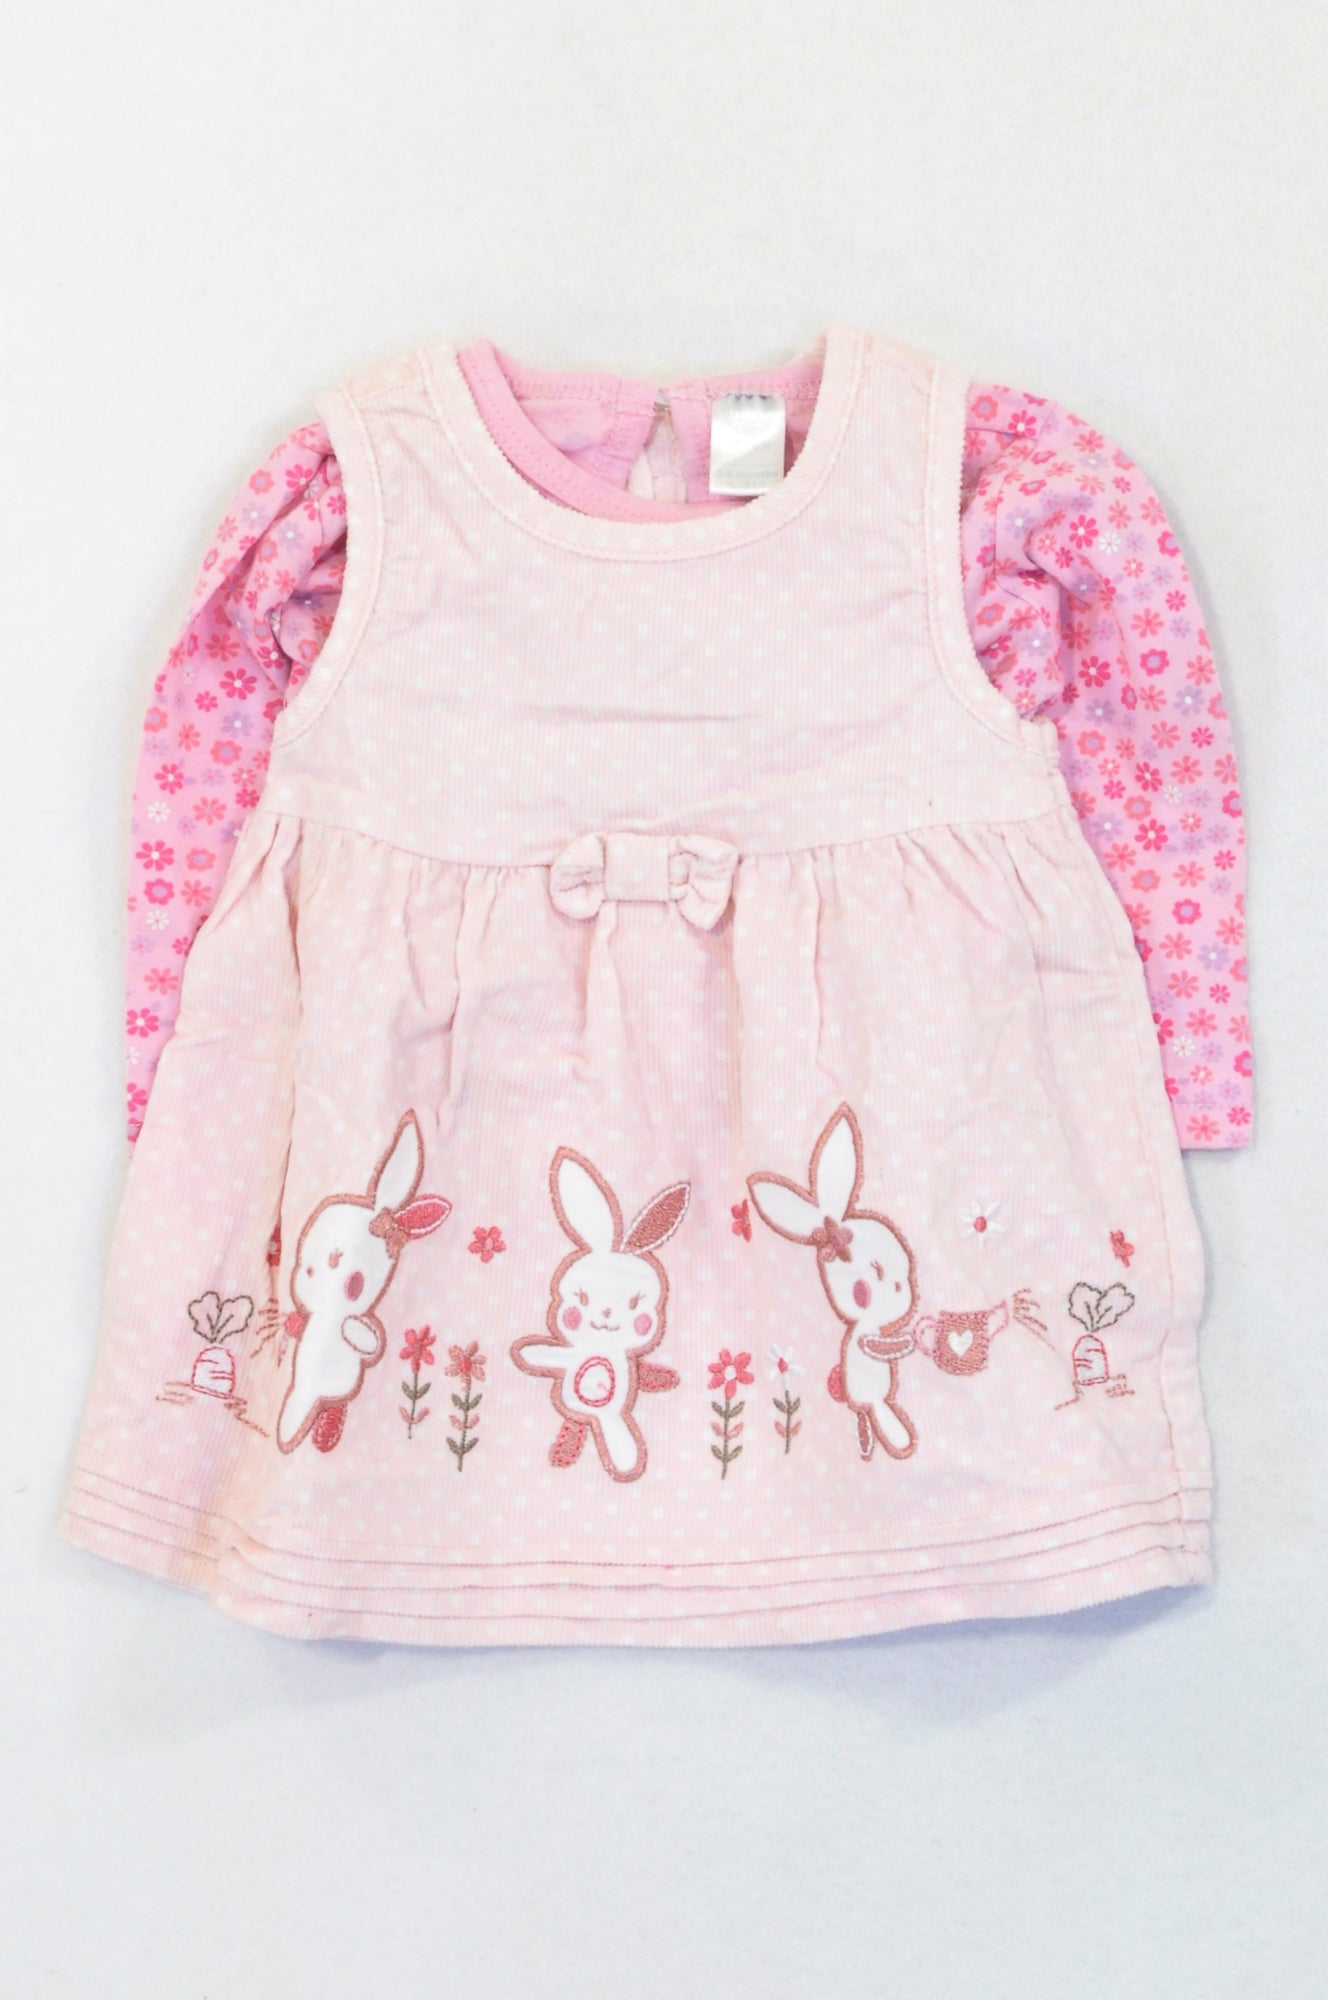 Ackermans Pink Corduroy Dotty Embroidered Bunnies Dress & Floral Print T-shirt Outfit Girls 3-6 months